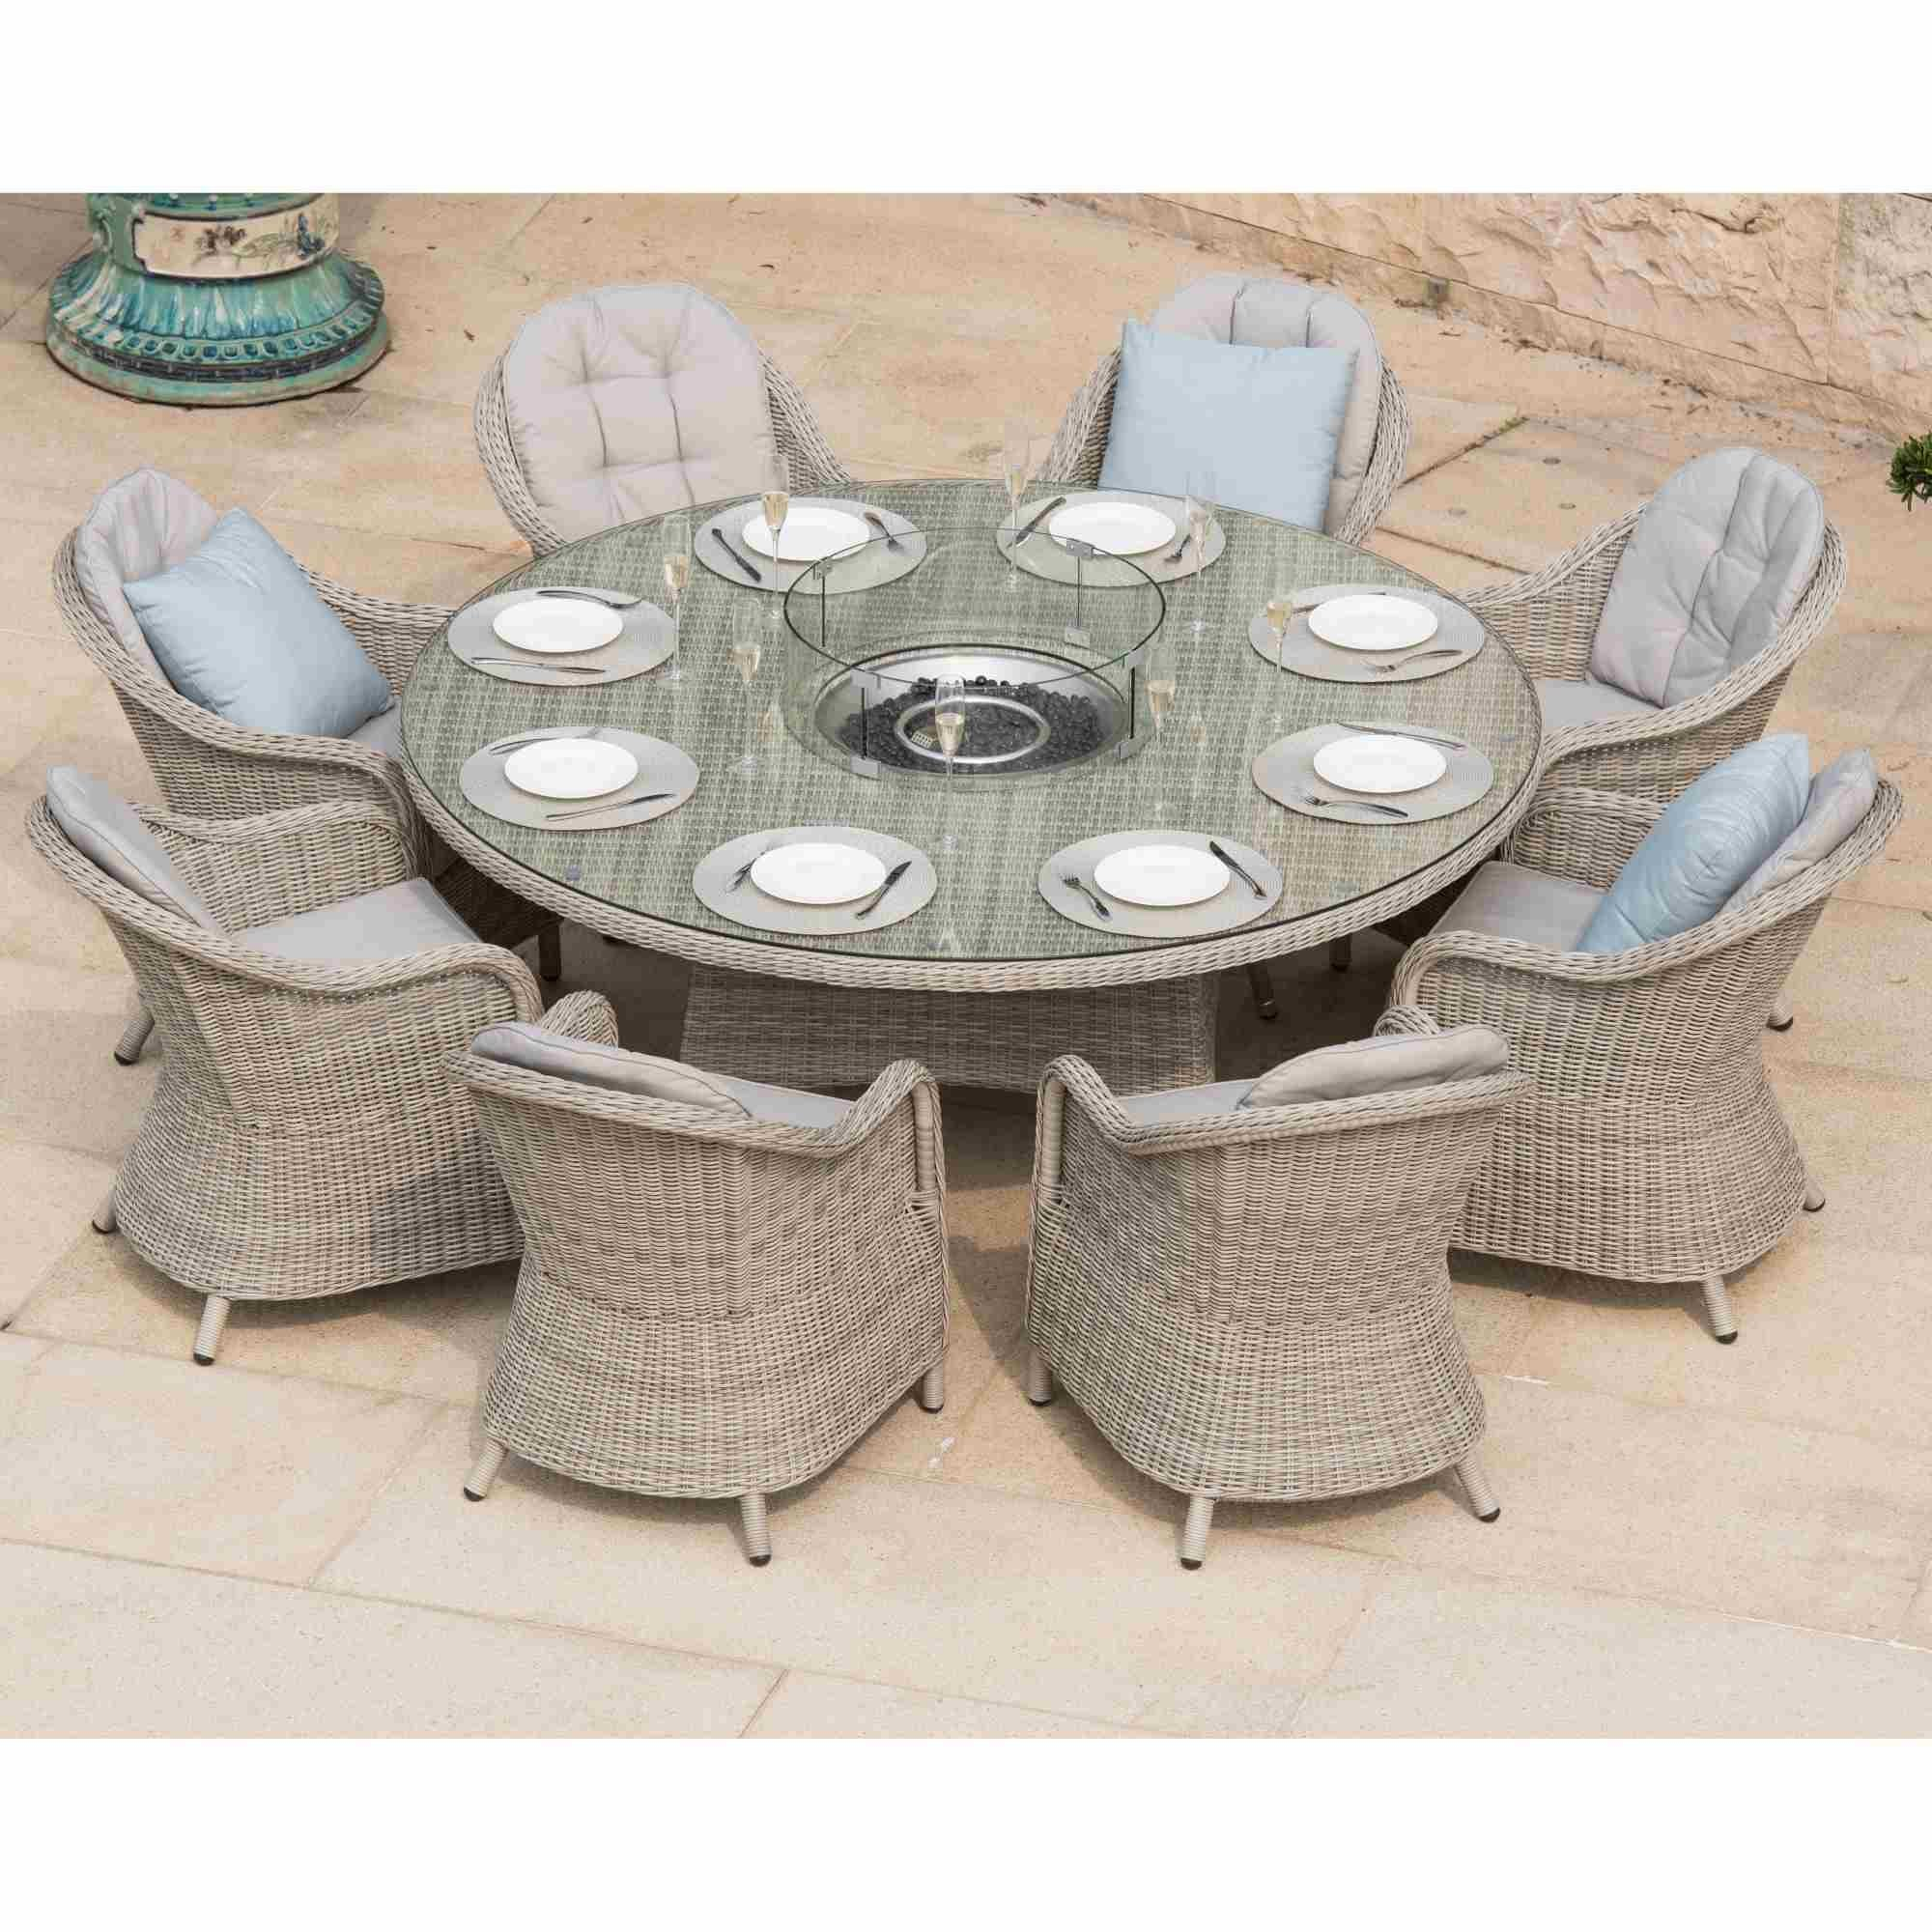 Maze Rattan Oxford 8 Seat Round Fire Pit Dining Set With Heritage Chairs Garden Street